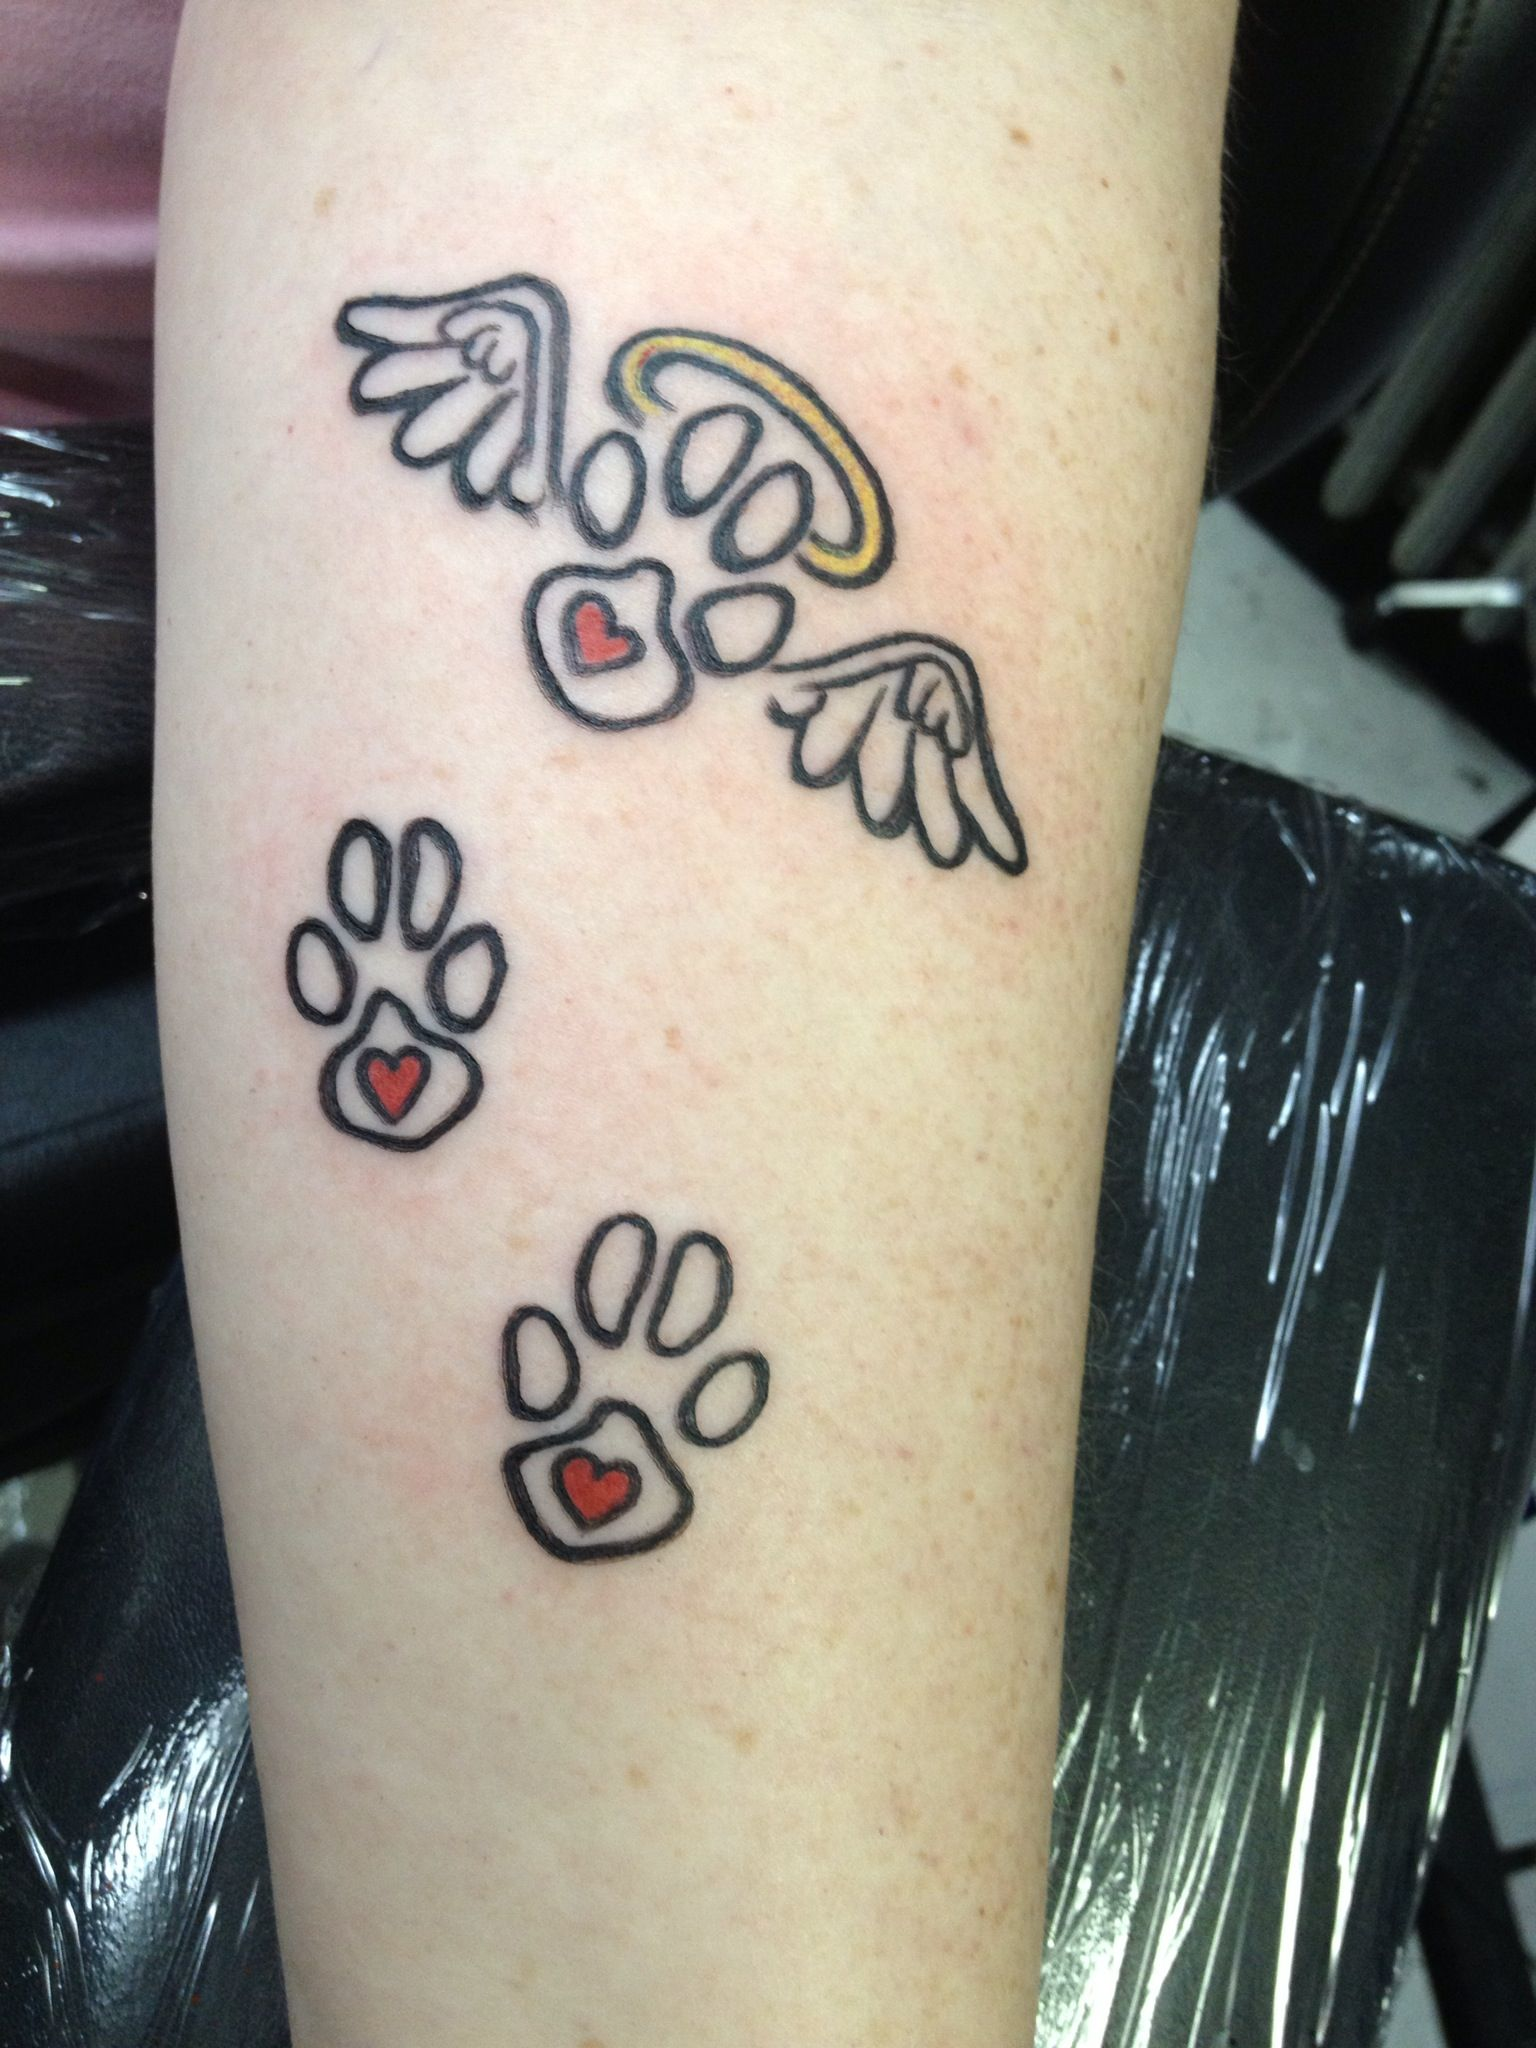 Paw print tattoos. Angel wings for each who has crossed over the rainbow bridge.